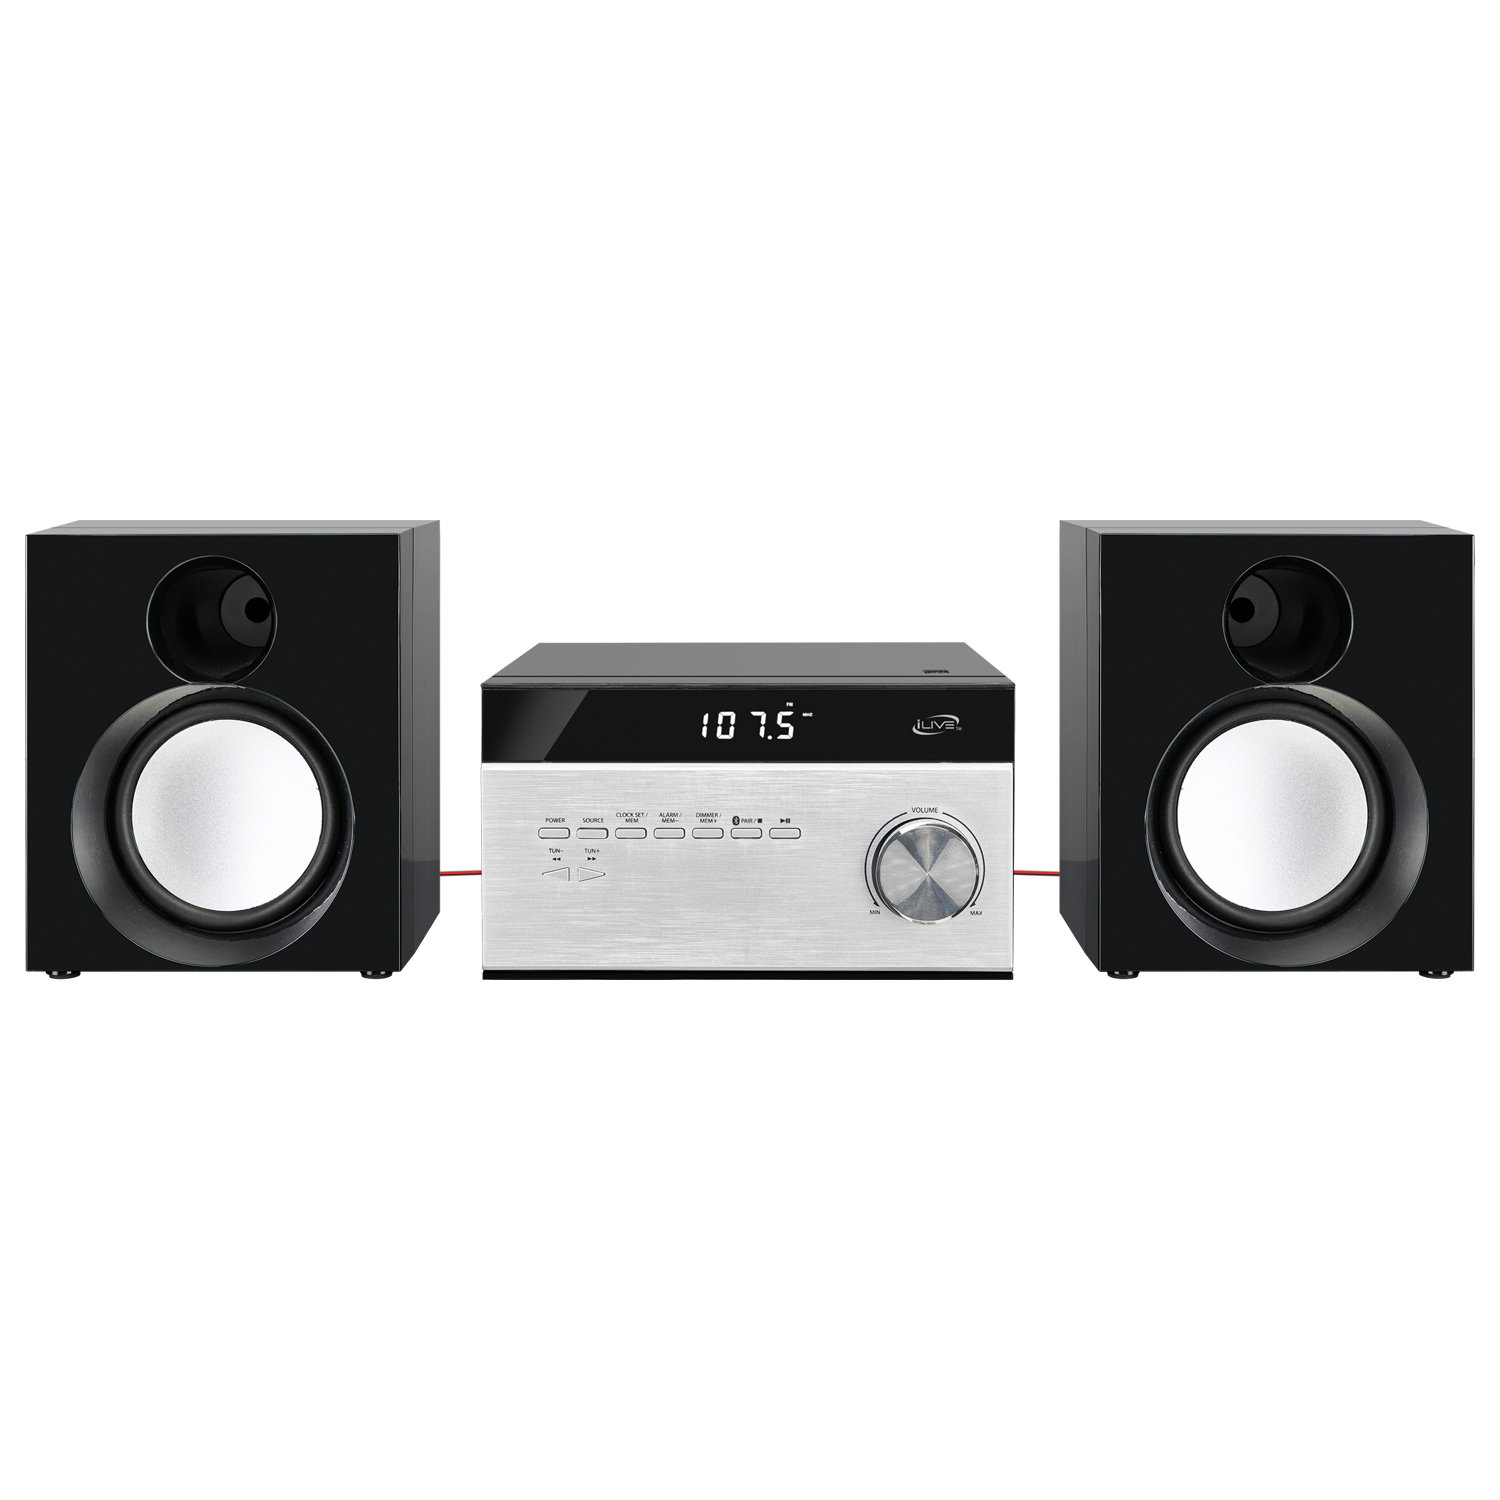 iLive Wireless Home Stereo System, with CD Player and AM/FM Radio, Includes Remote Control (iHB227B) by iLive